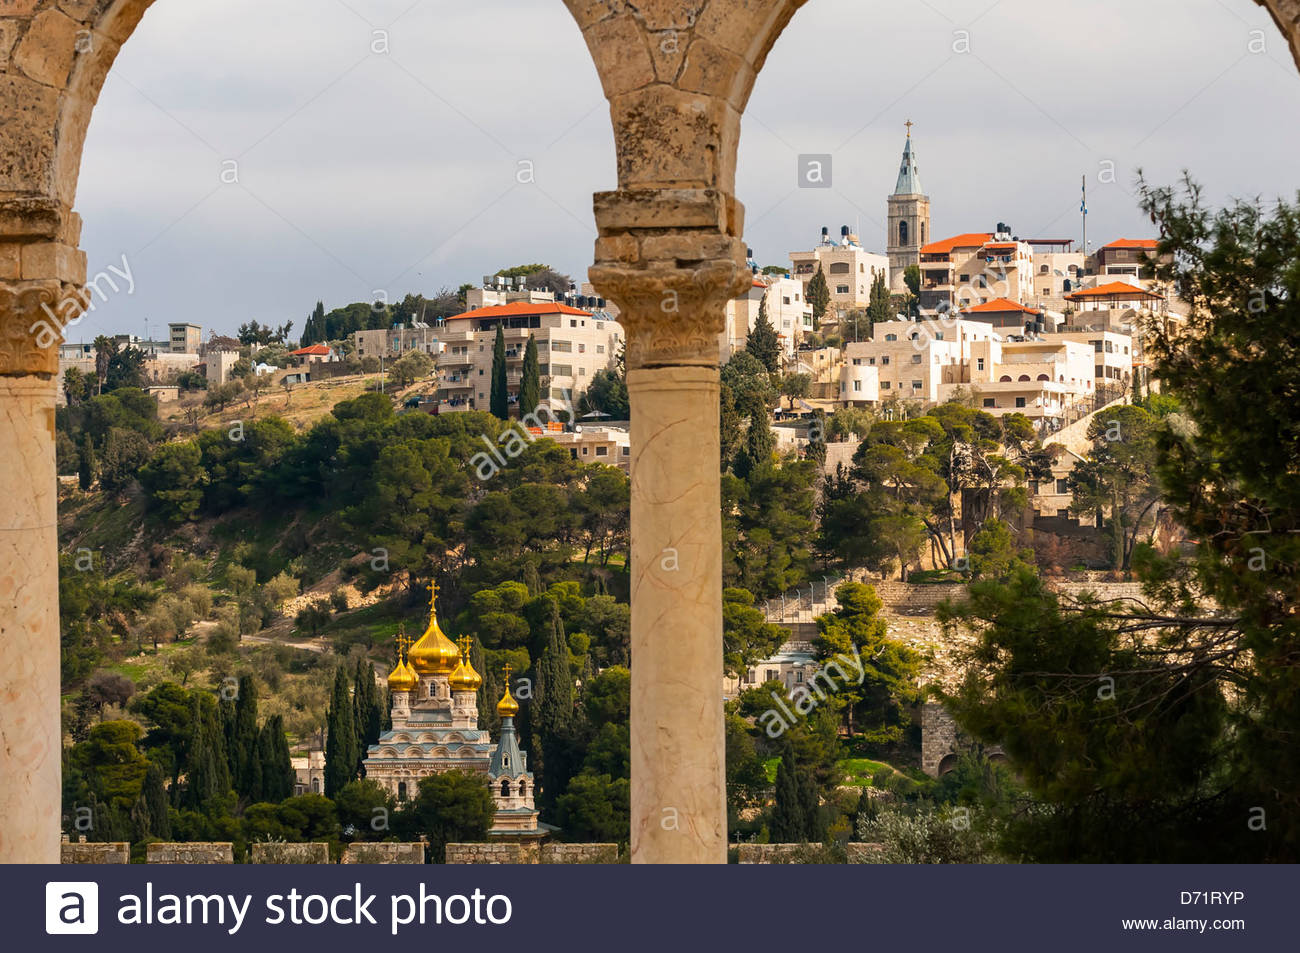 Russian Orthodox Church of Maria Magdelene, Mount of Olives, viewed through arches of the Dome of the Rock on the Stock Photo